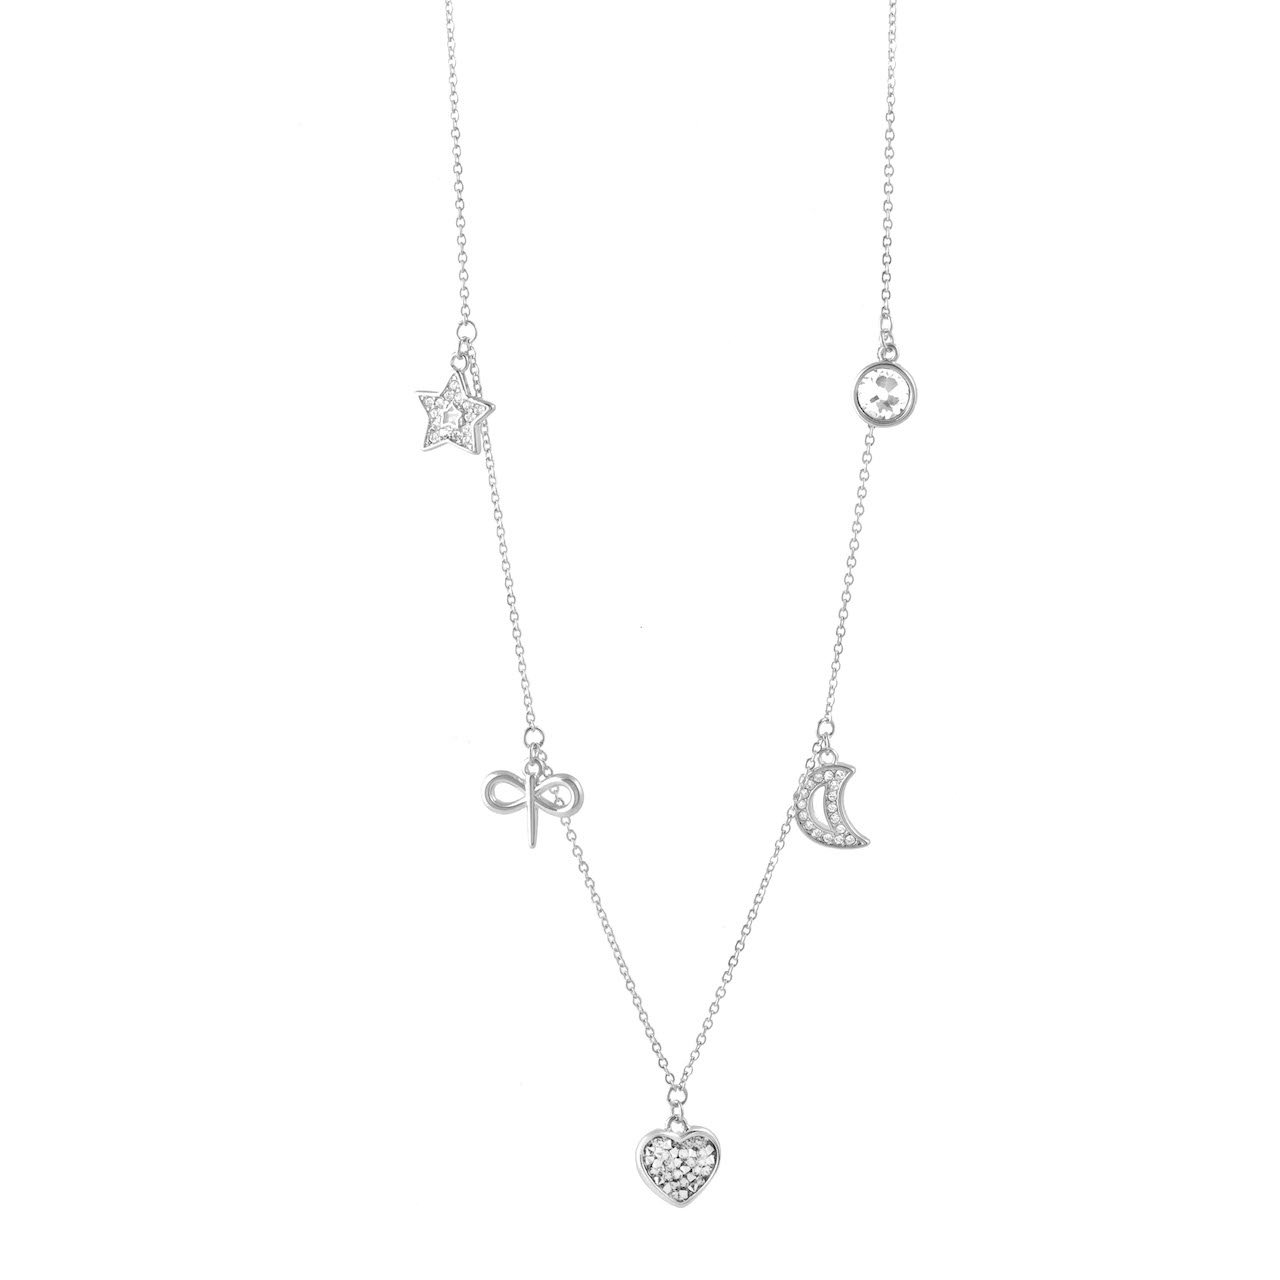 Celebrating Women 2021 Charm Necklace Silver